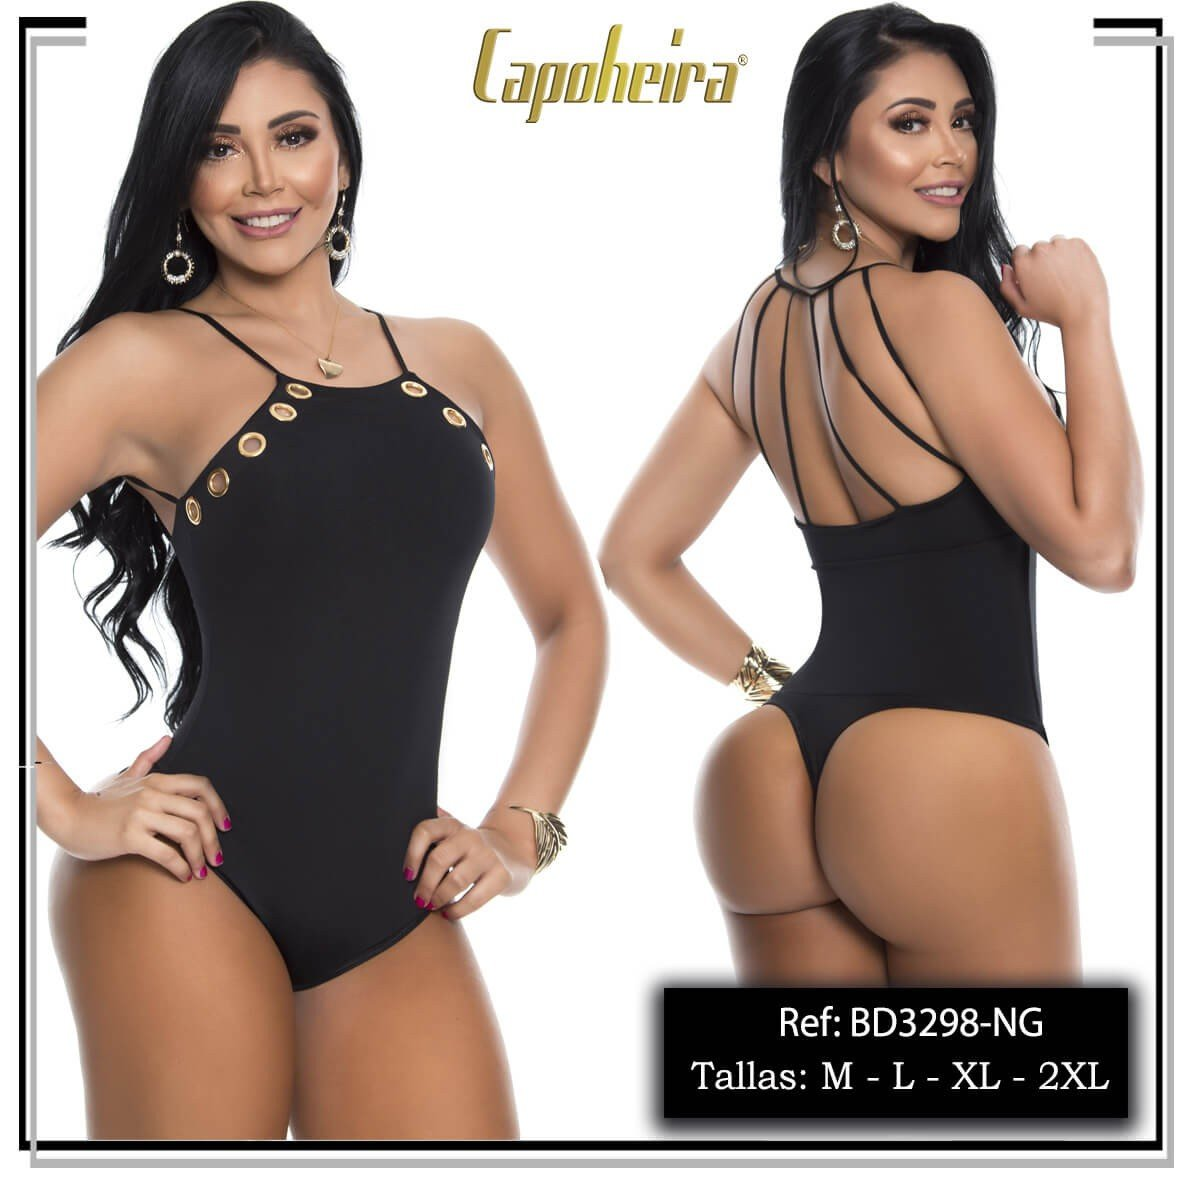 Body Reductor BD3298